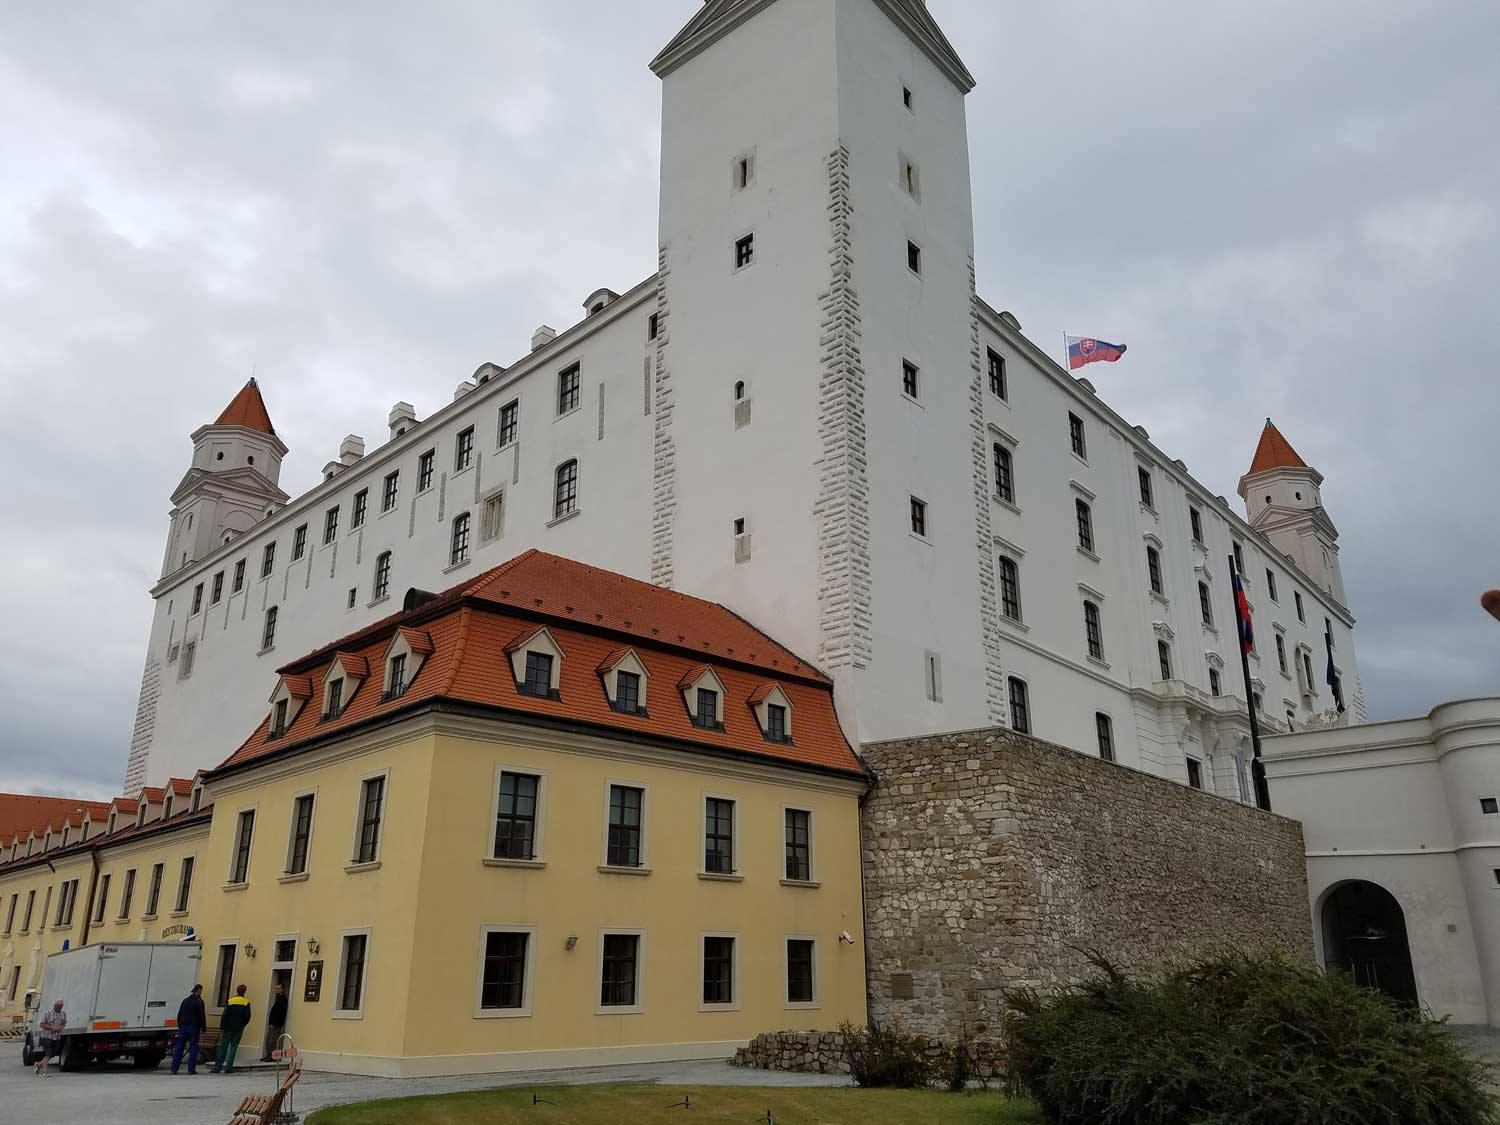 The hulking Bratislava Castle dates back to the 10th century, but the hill where it is located has been a key strategic stronghold for thousands of years, from ancient tribes to the Celts and Romans to the Slavs and the Kingdom of Hungary. In 1809, it was bombarded by Napoleon's army, and it suffered severe fire damage three years later, then lay in ruin for more than a century. It was restored after WW2.